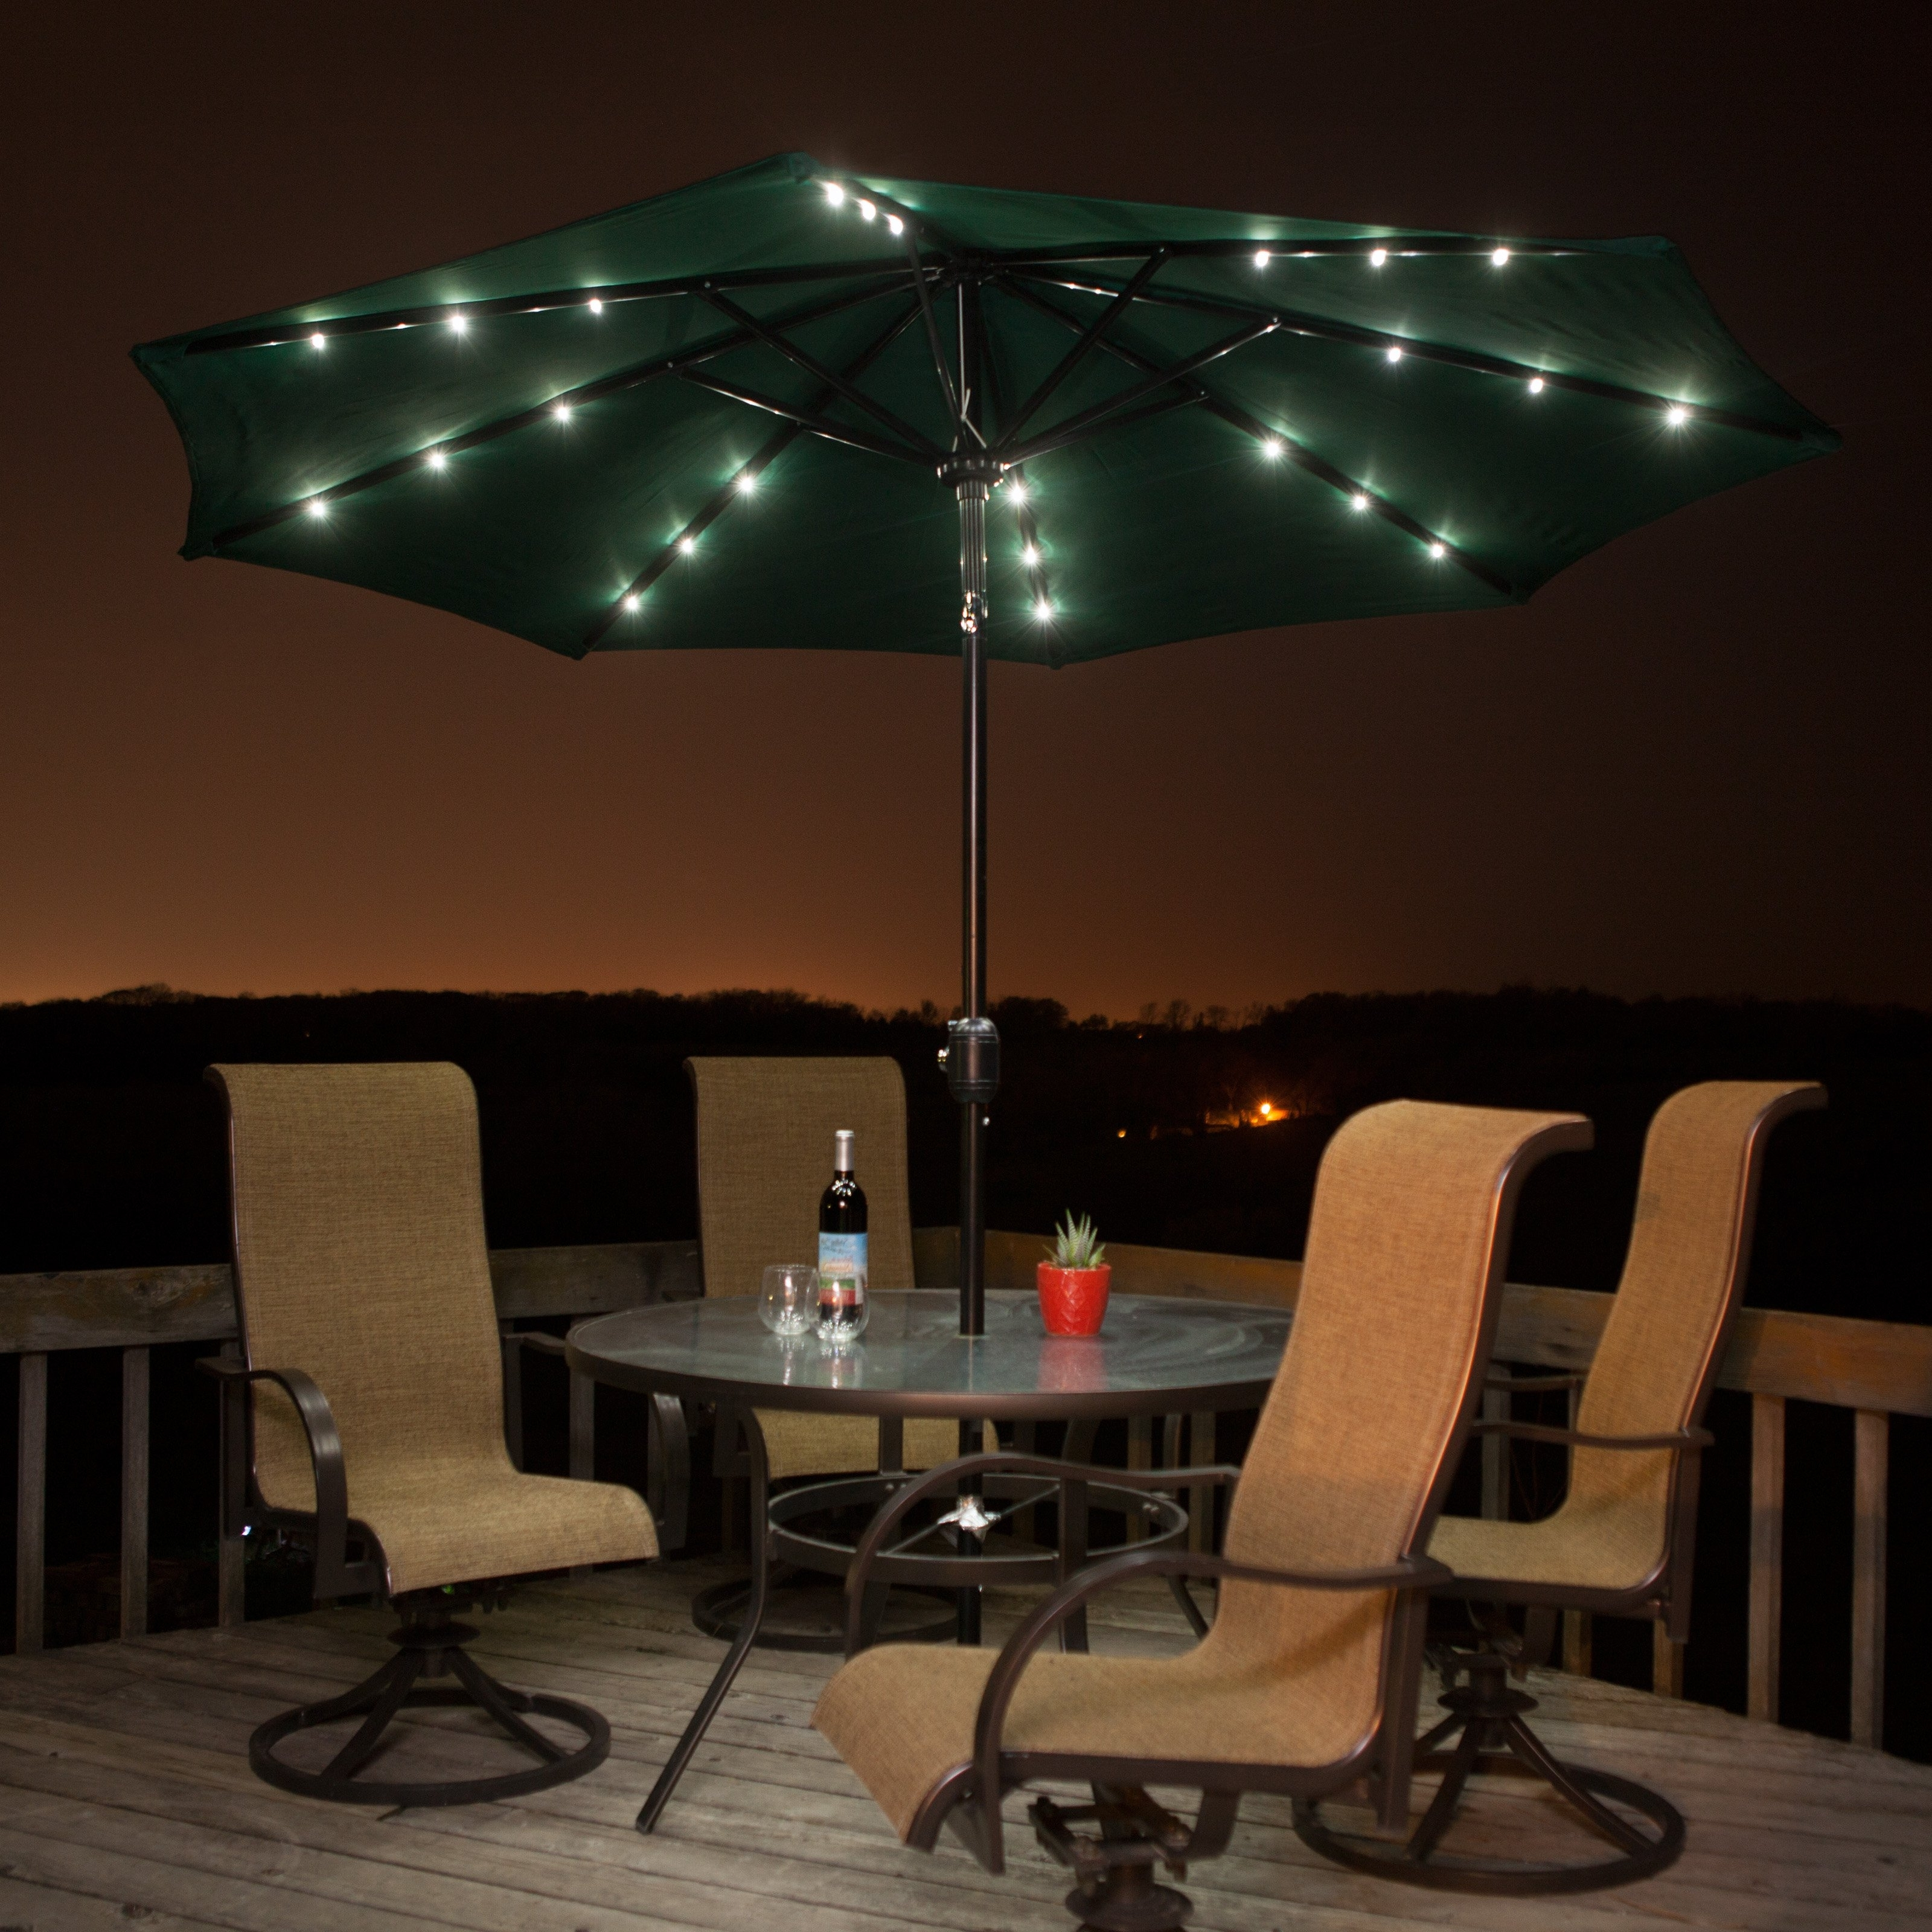 Lighted Patio Umbrellas — Mistikcamping Home Design : Different Intended For Current Lighted Patio Umbrellas (Gallery 11 of 20)